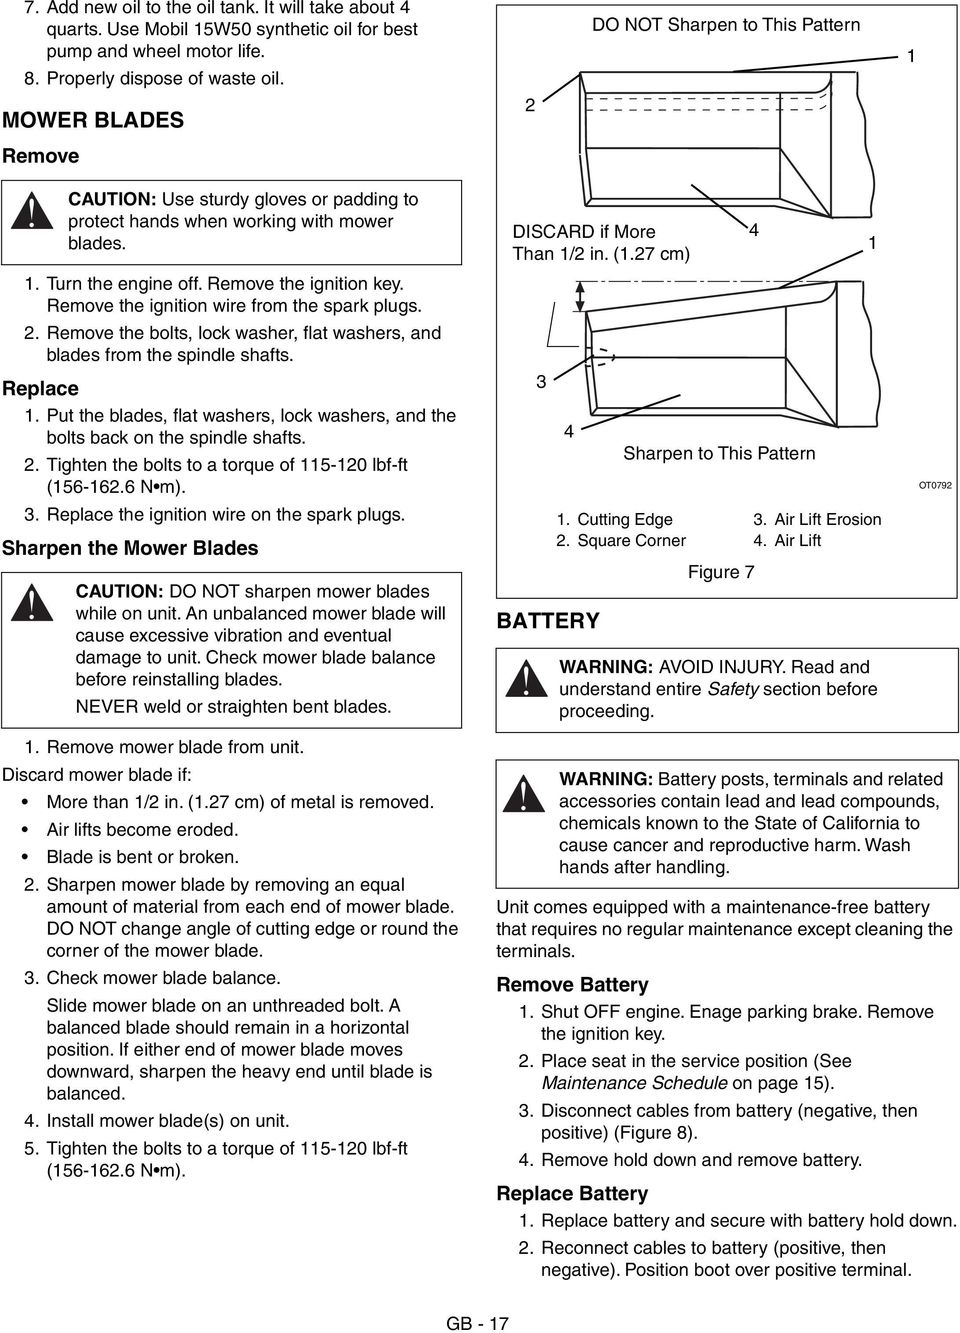 Ariens St724 Snowblower Parts For Snow Blower Wiring Diagram Model And Car Images Ez Info Wire Mower